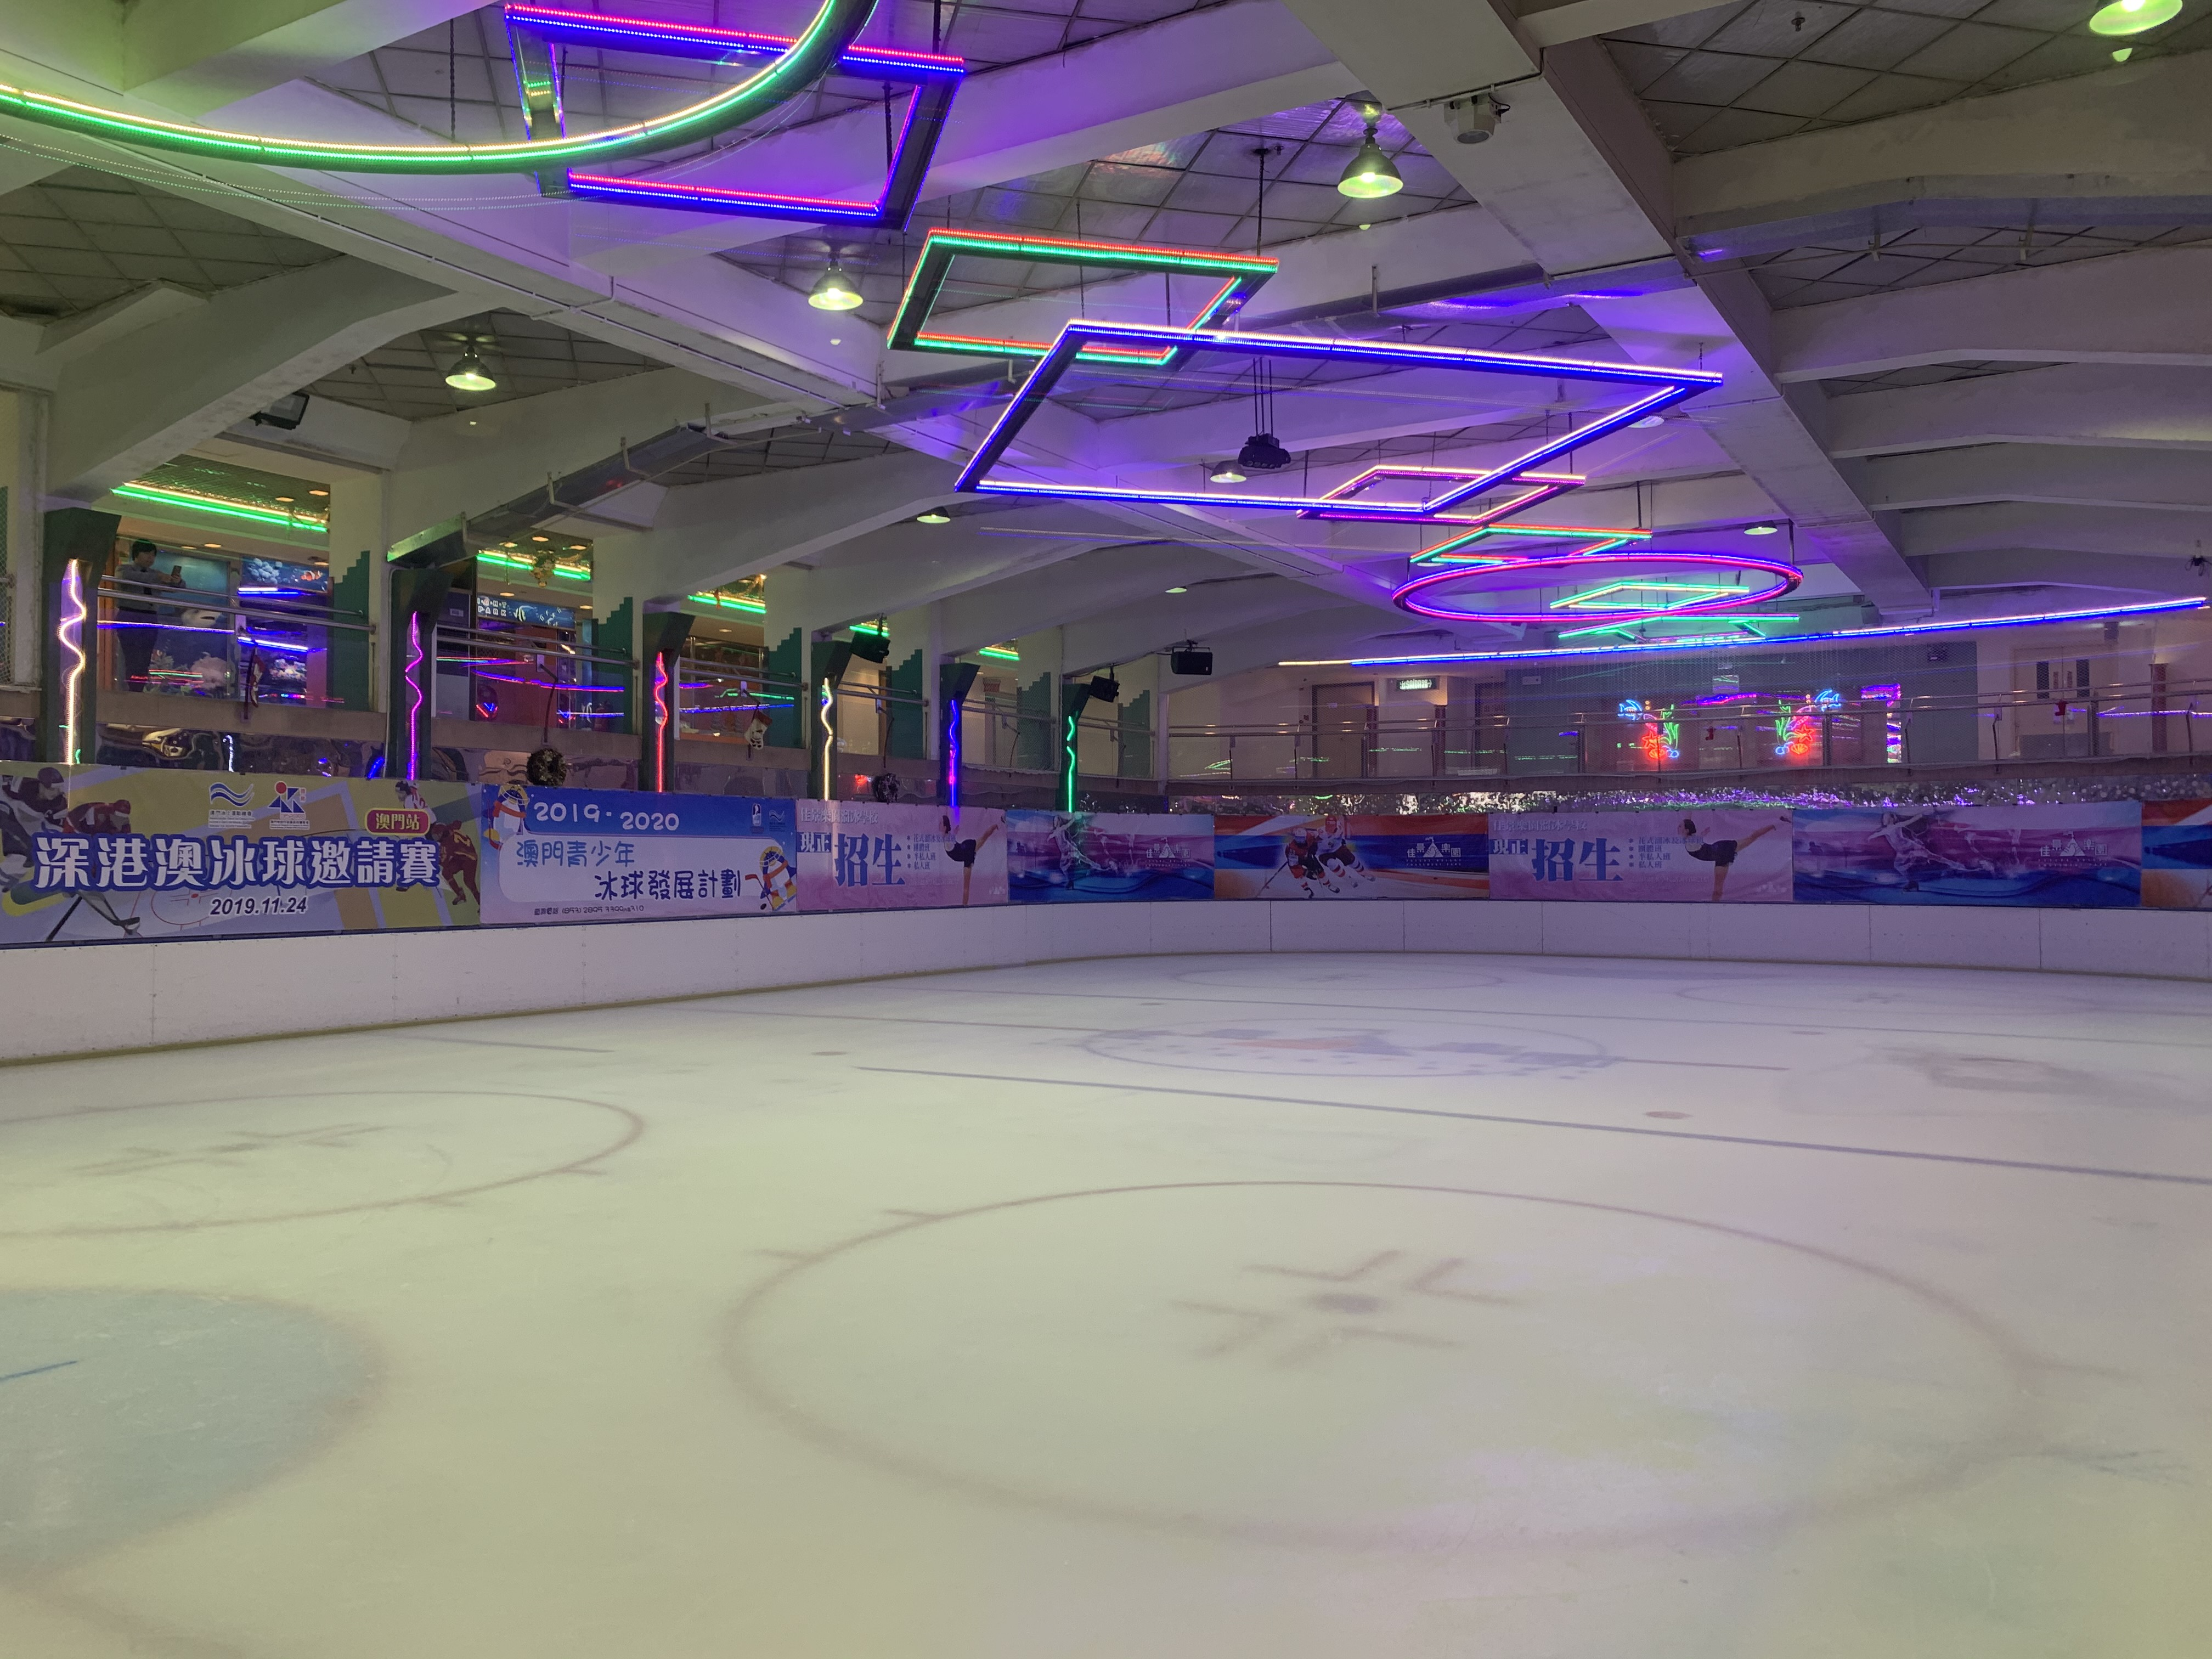 Future Bright Amusement Park Ice Rink Full Photo Macau Lifestyle